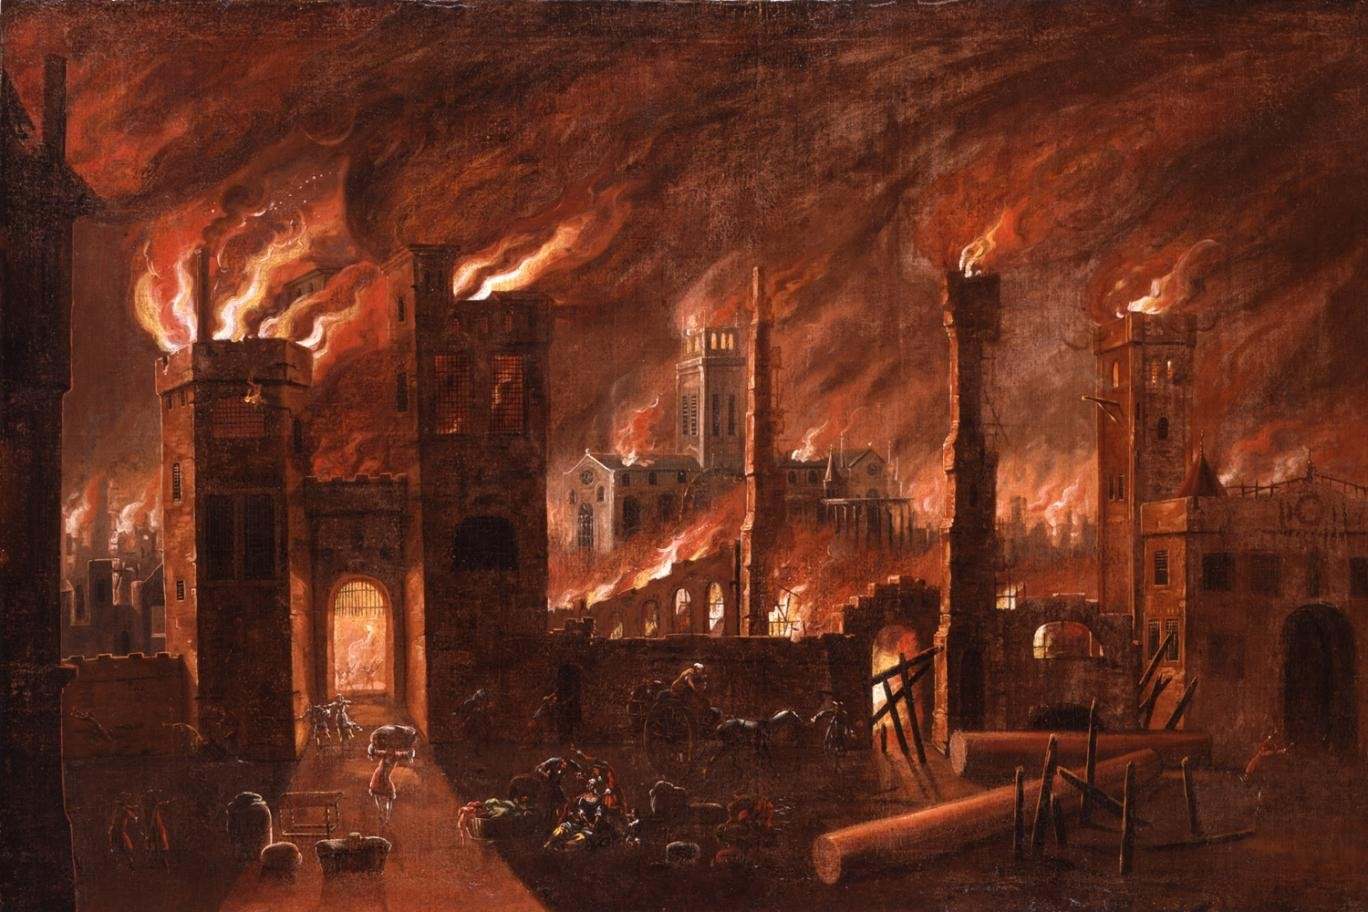 Marking the Great Fire of London 1666